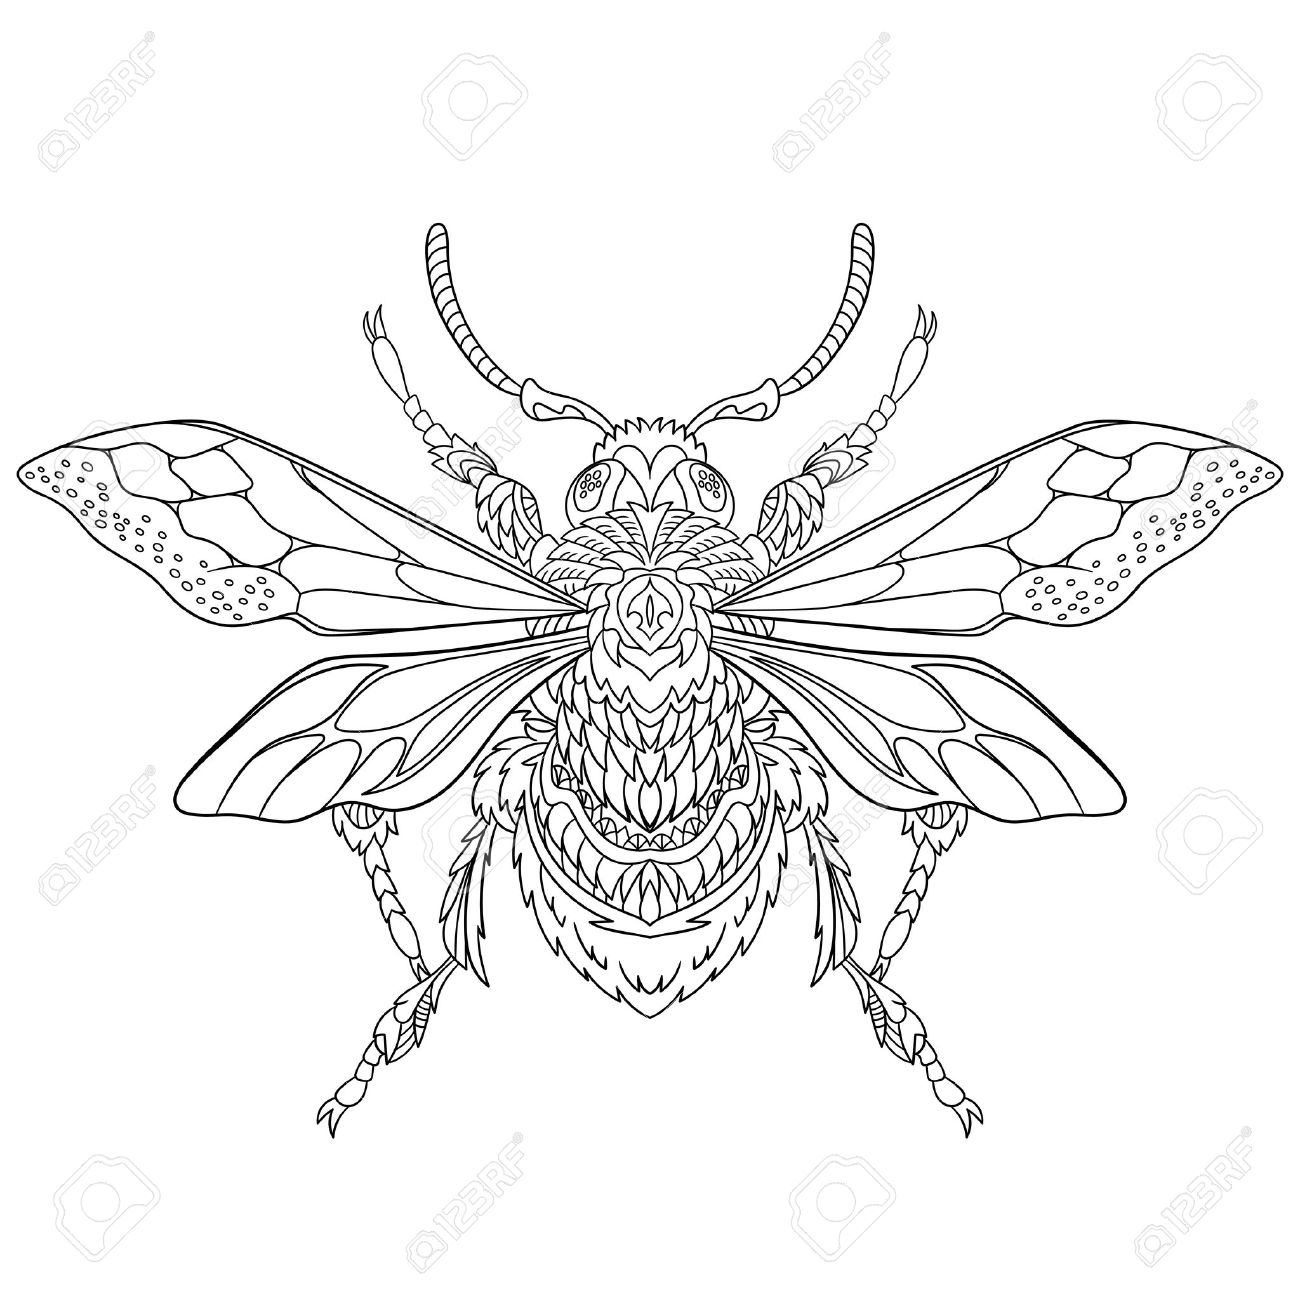 Stylized Cartoon Beetle Insect, Isolated On White Background. Sketch For  Adult Antistress Coloring Page